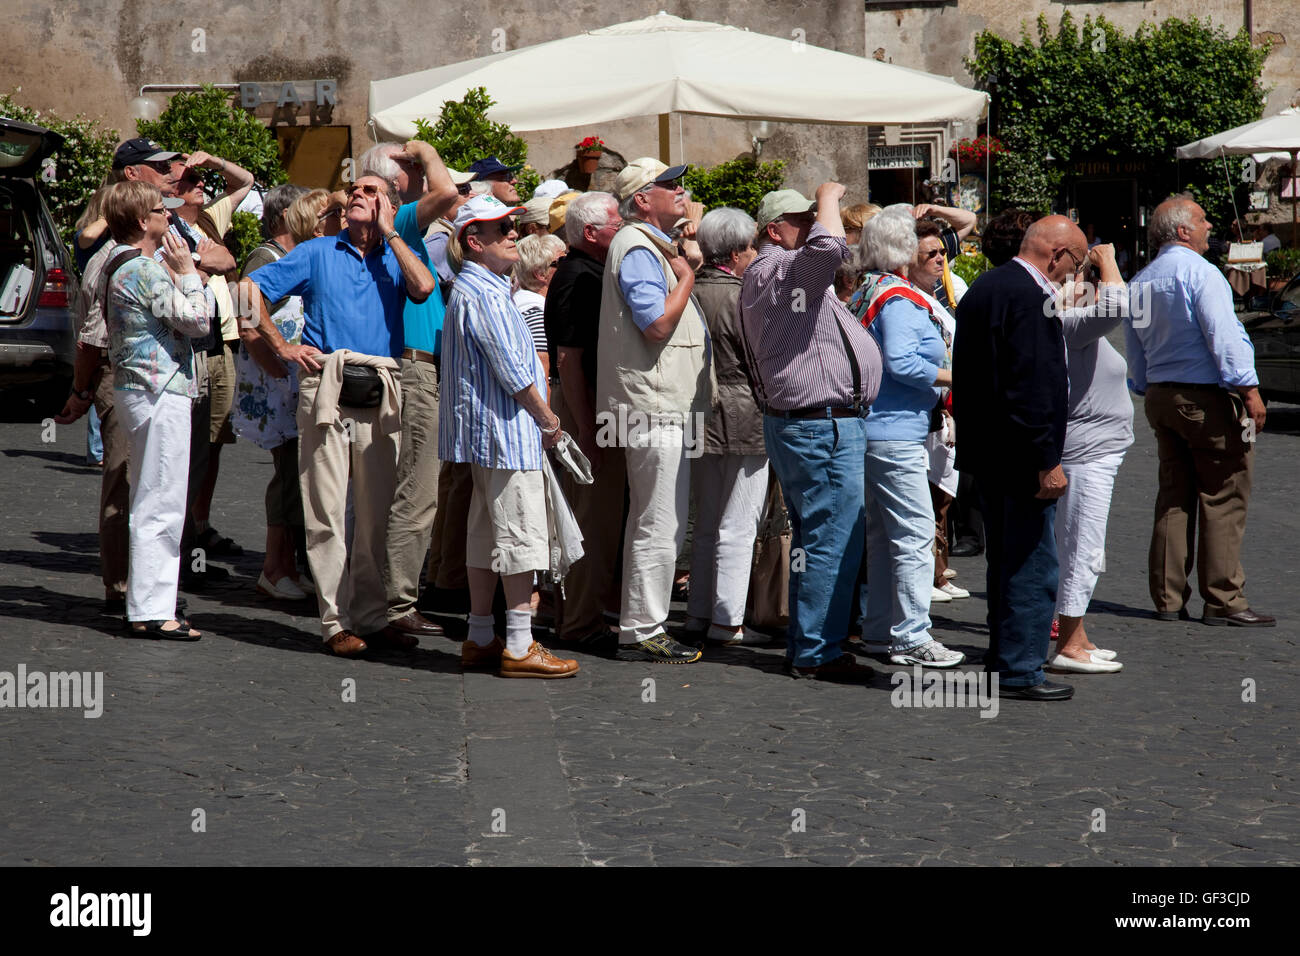 German tourists look at the Duomo on a tour in Orvieto, Italy while one man looks at something else? - Stock Image